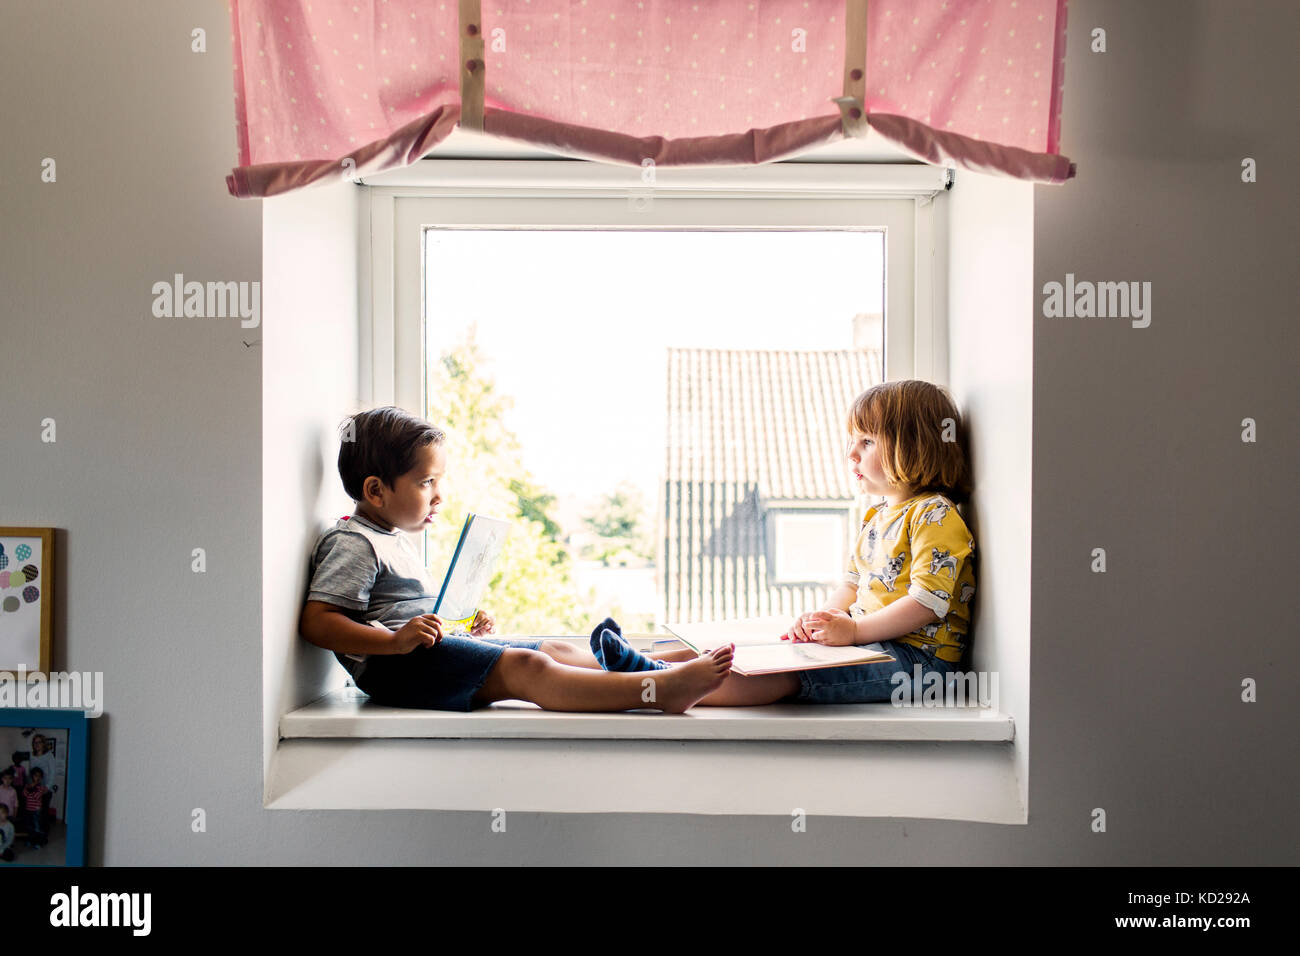 Girl and boy (2-3) sitting and reading by window - Stock Image